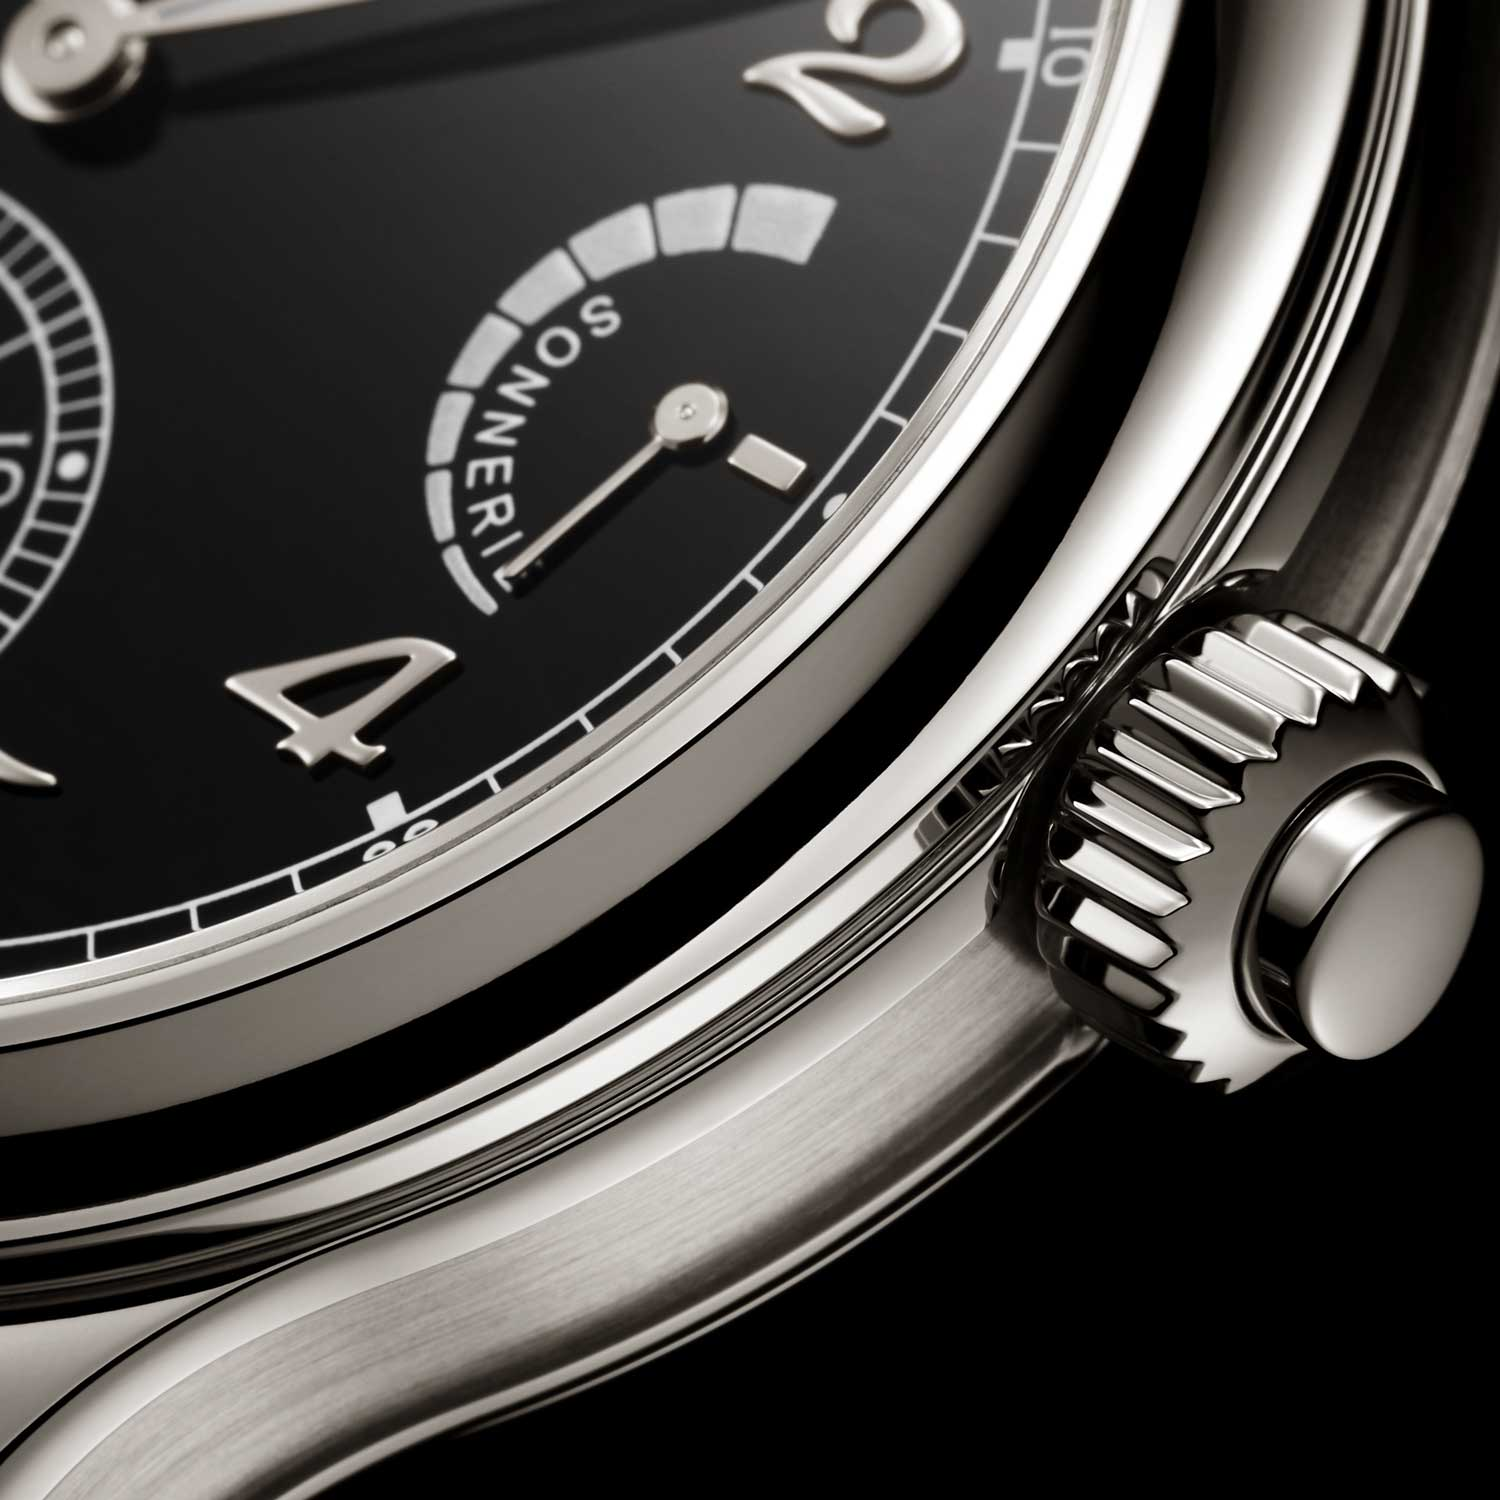 The Patek Philippe Ref. 6301P Grande Sonnerie features a power reserve indicator at 3 o'clock for the strikework mechanism